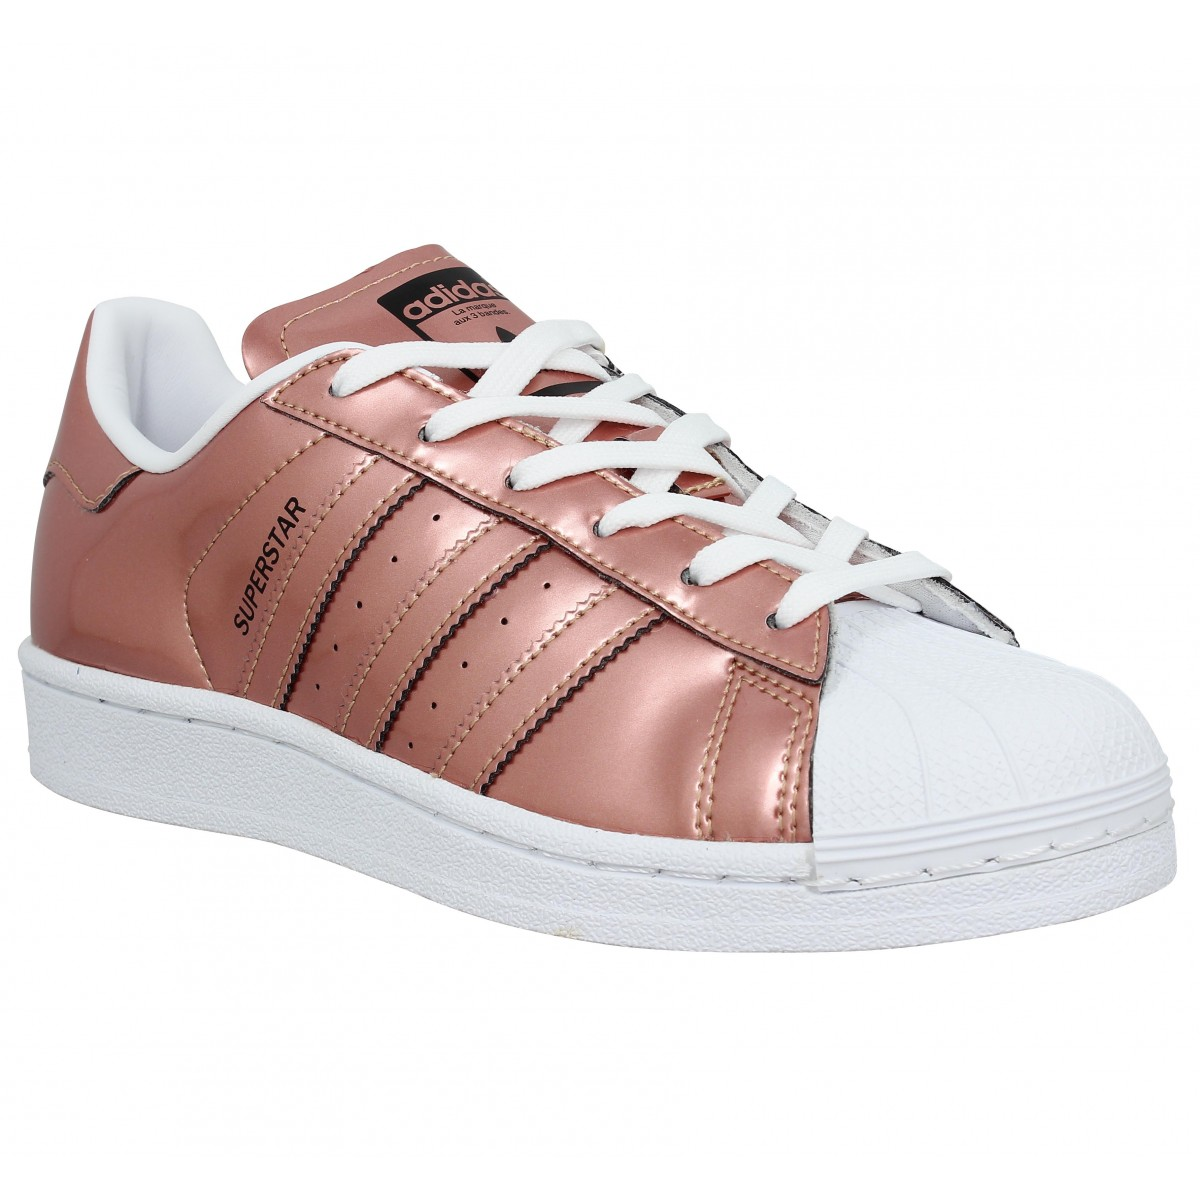 Baskets ADIDAS Superstar metal Femme Cuivre